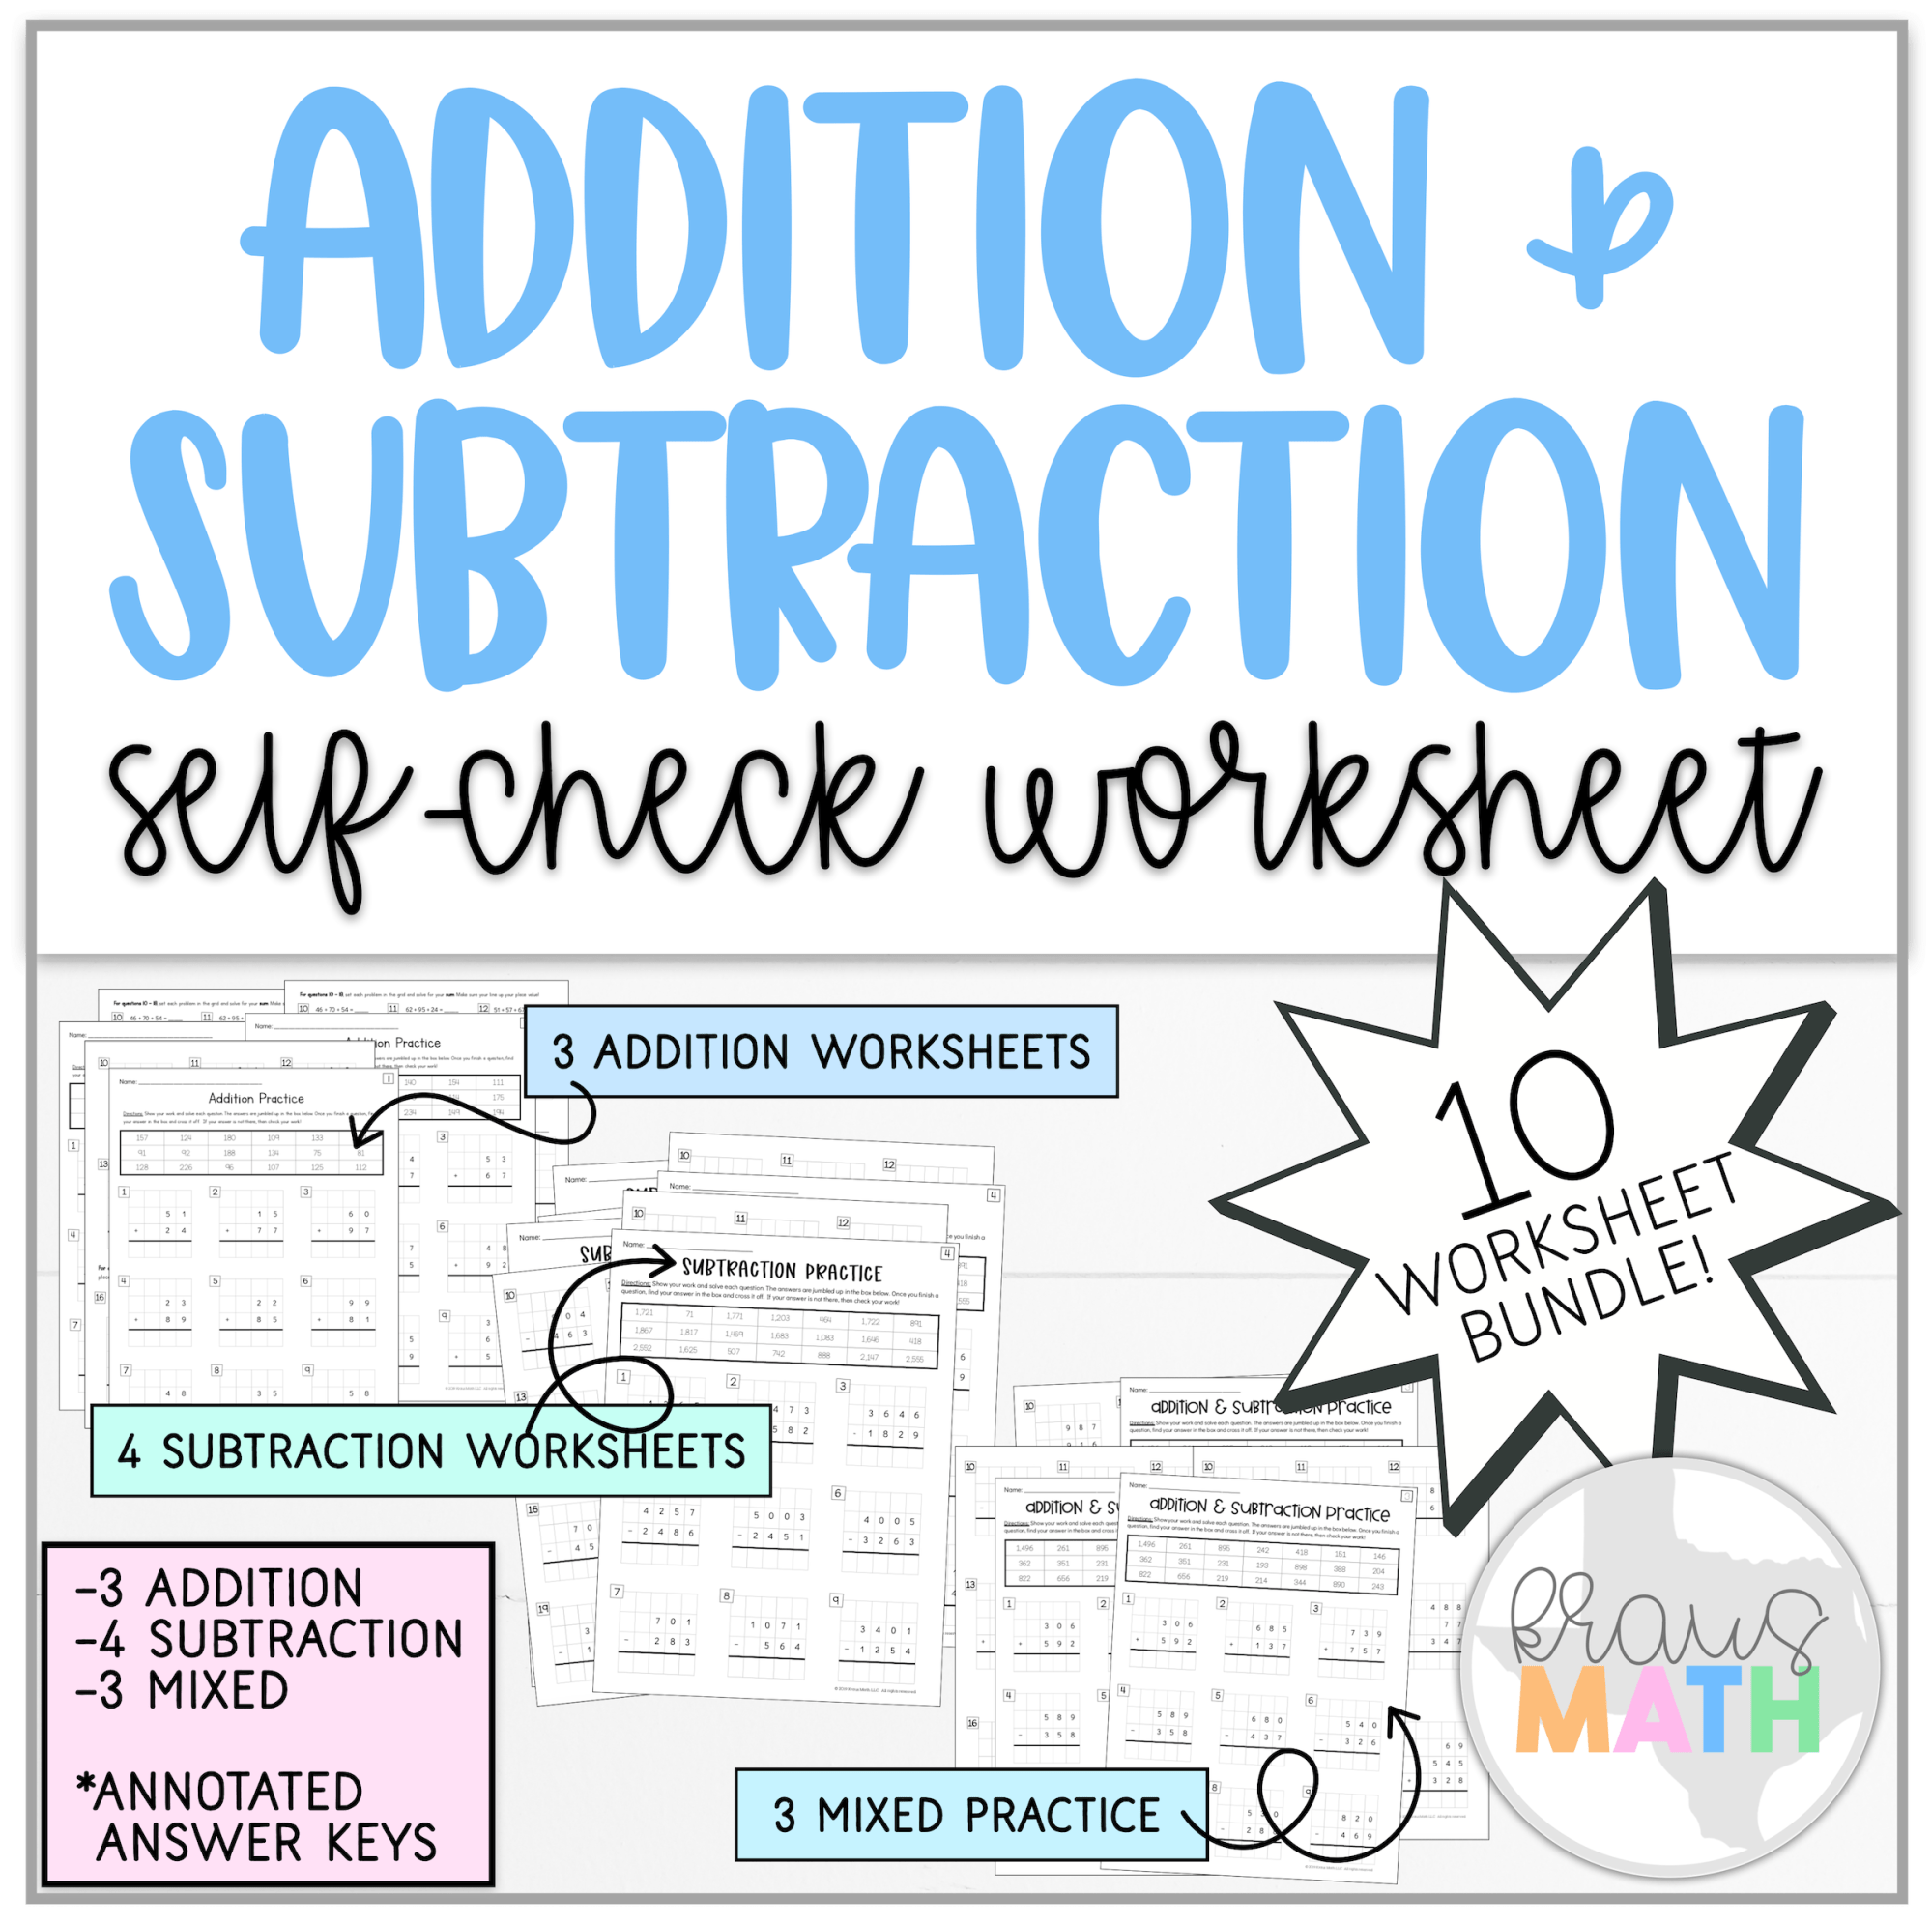 hight resolution of Addition \u0026 Subtraction Self-Check Worksheets   Kraus Math